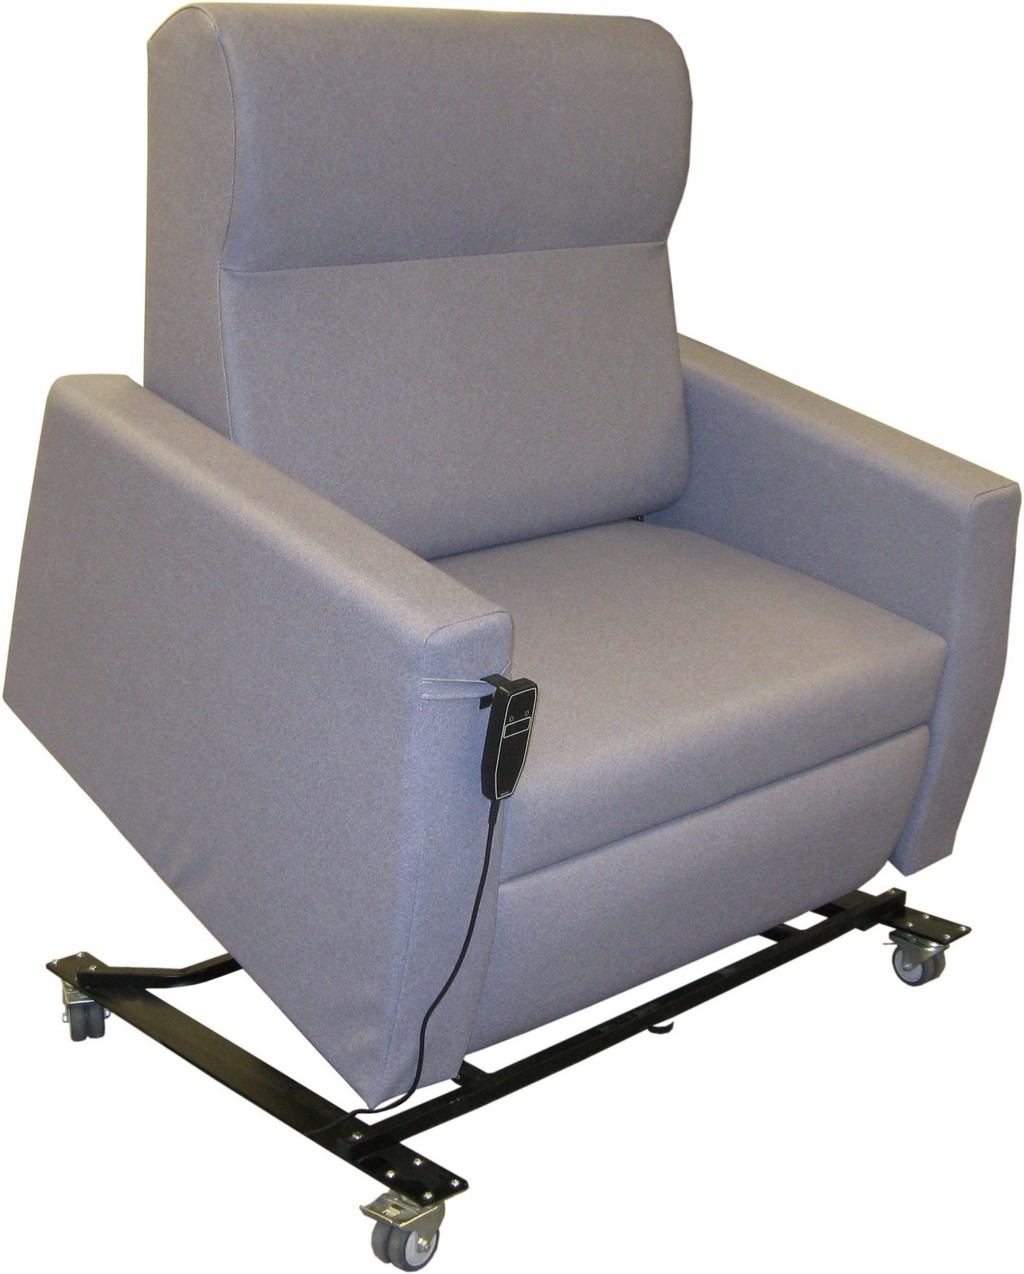 grandrapids craigs liftchair recliners, lane lift chair, lift chair battery, lazyboy elec lift chairs